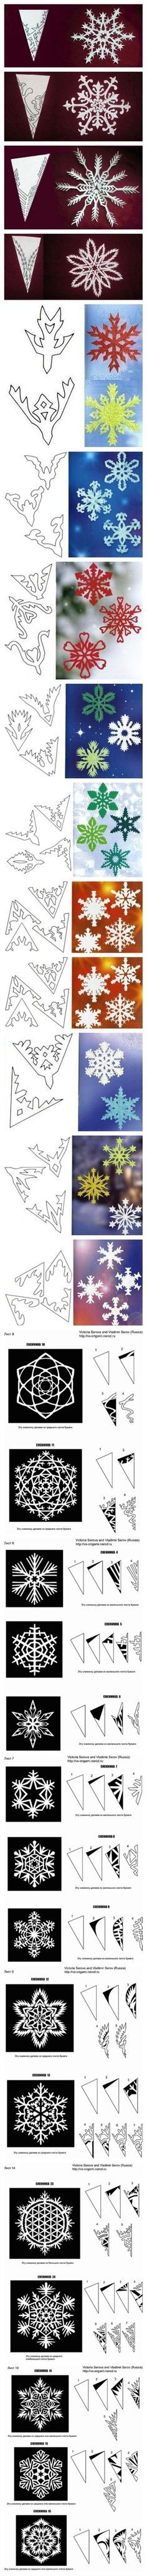 DIY & Crafts Ideas: how to cut snowflakes